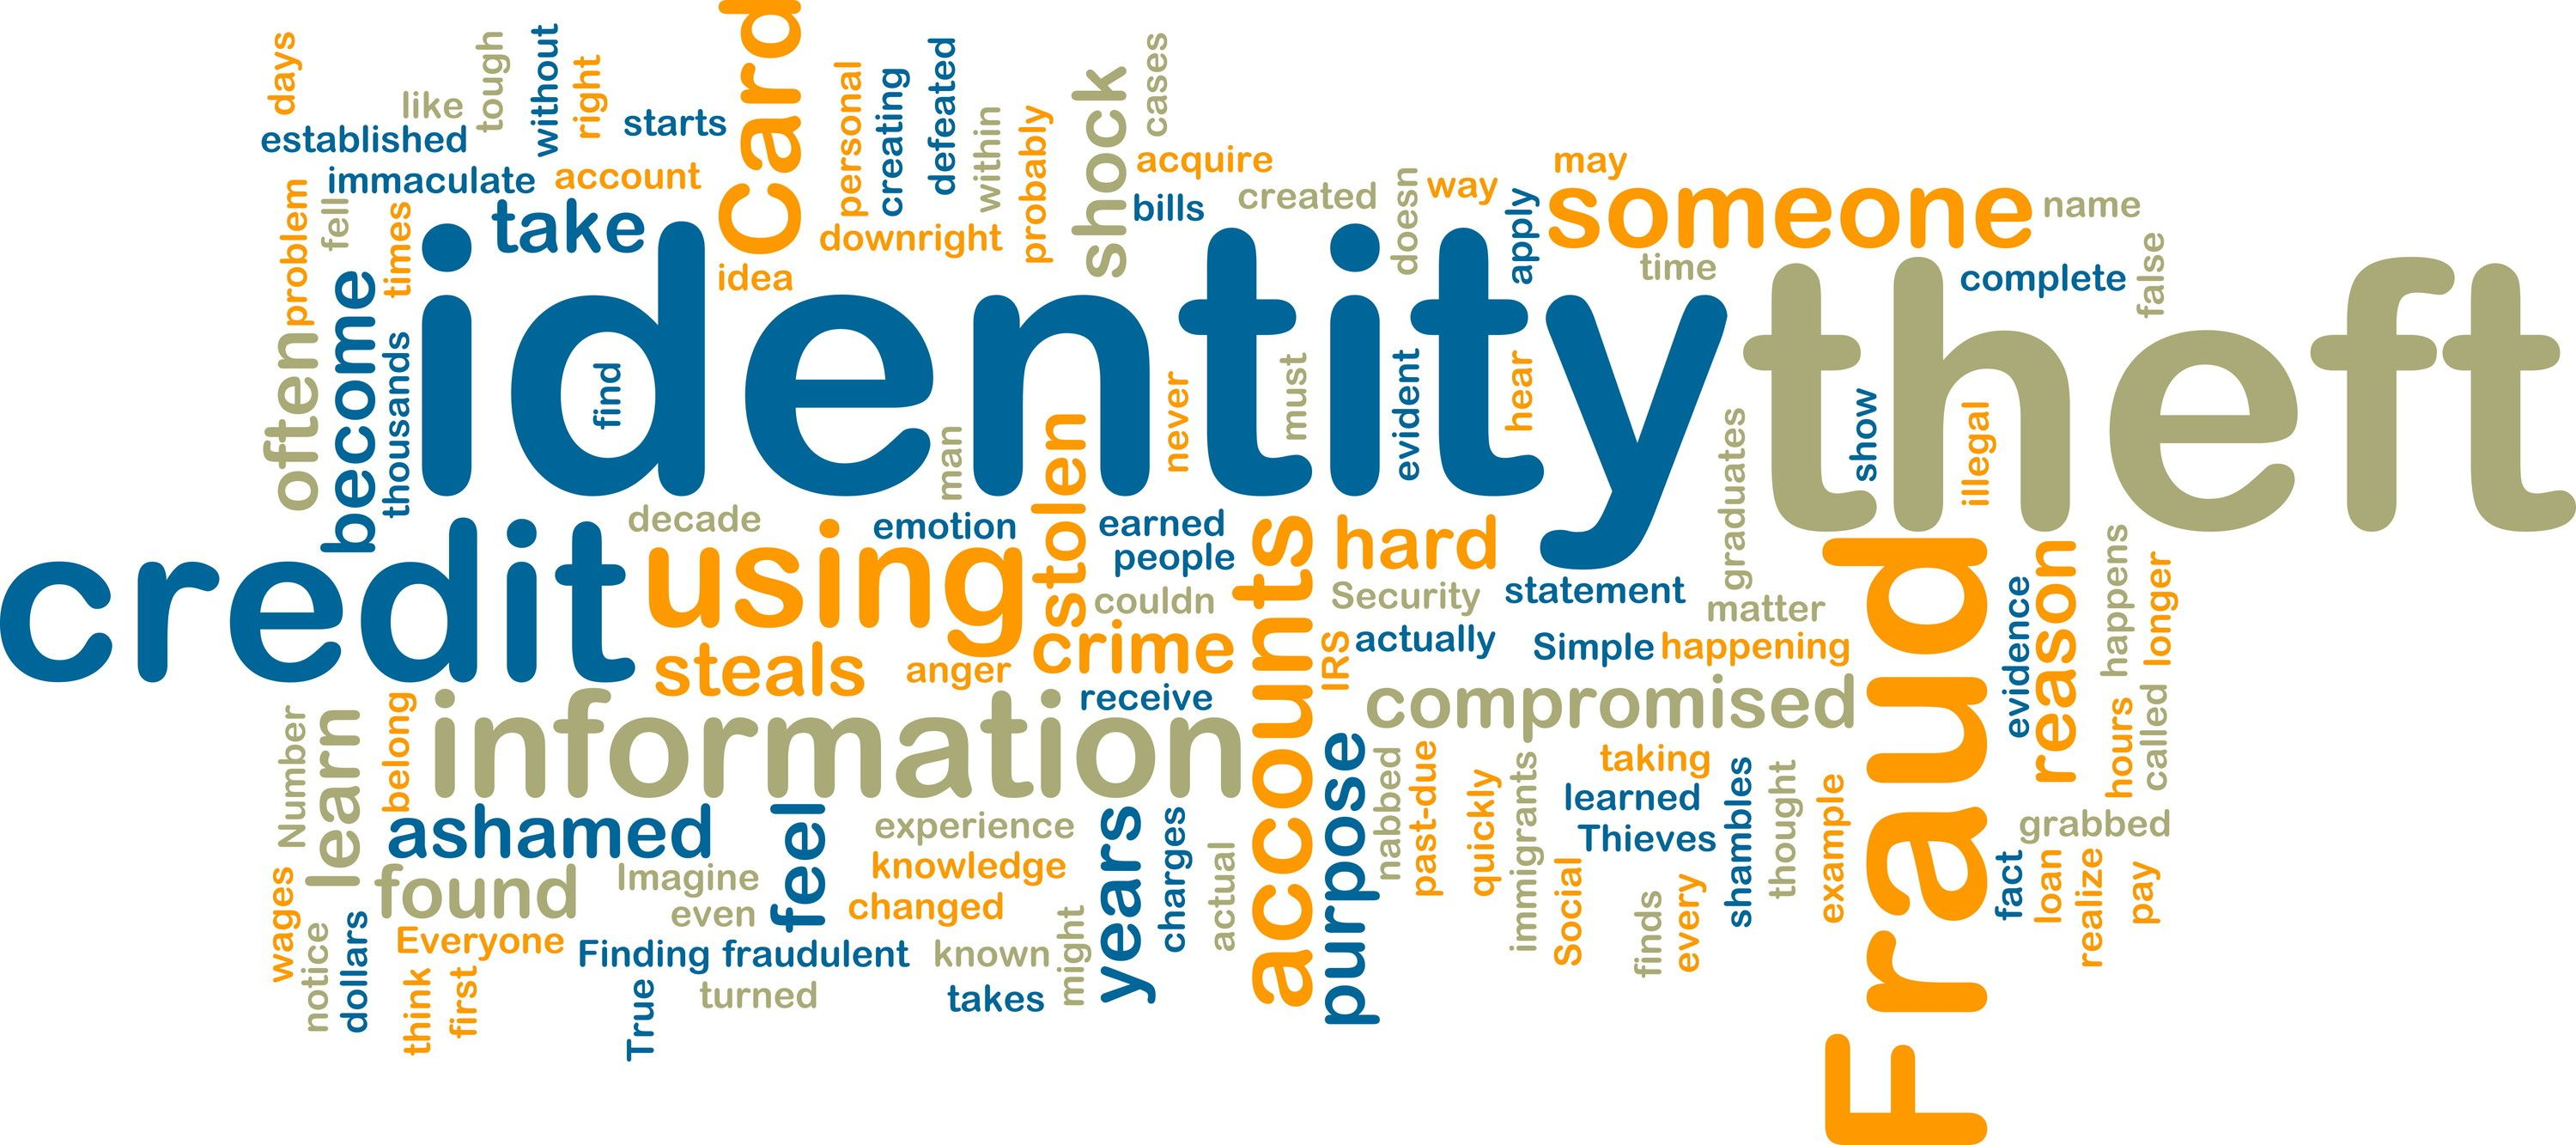 What Should You Do If You Are The Victim Of Identity Theft